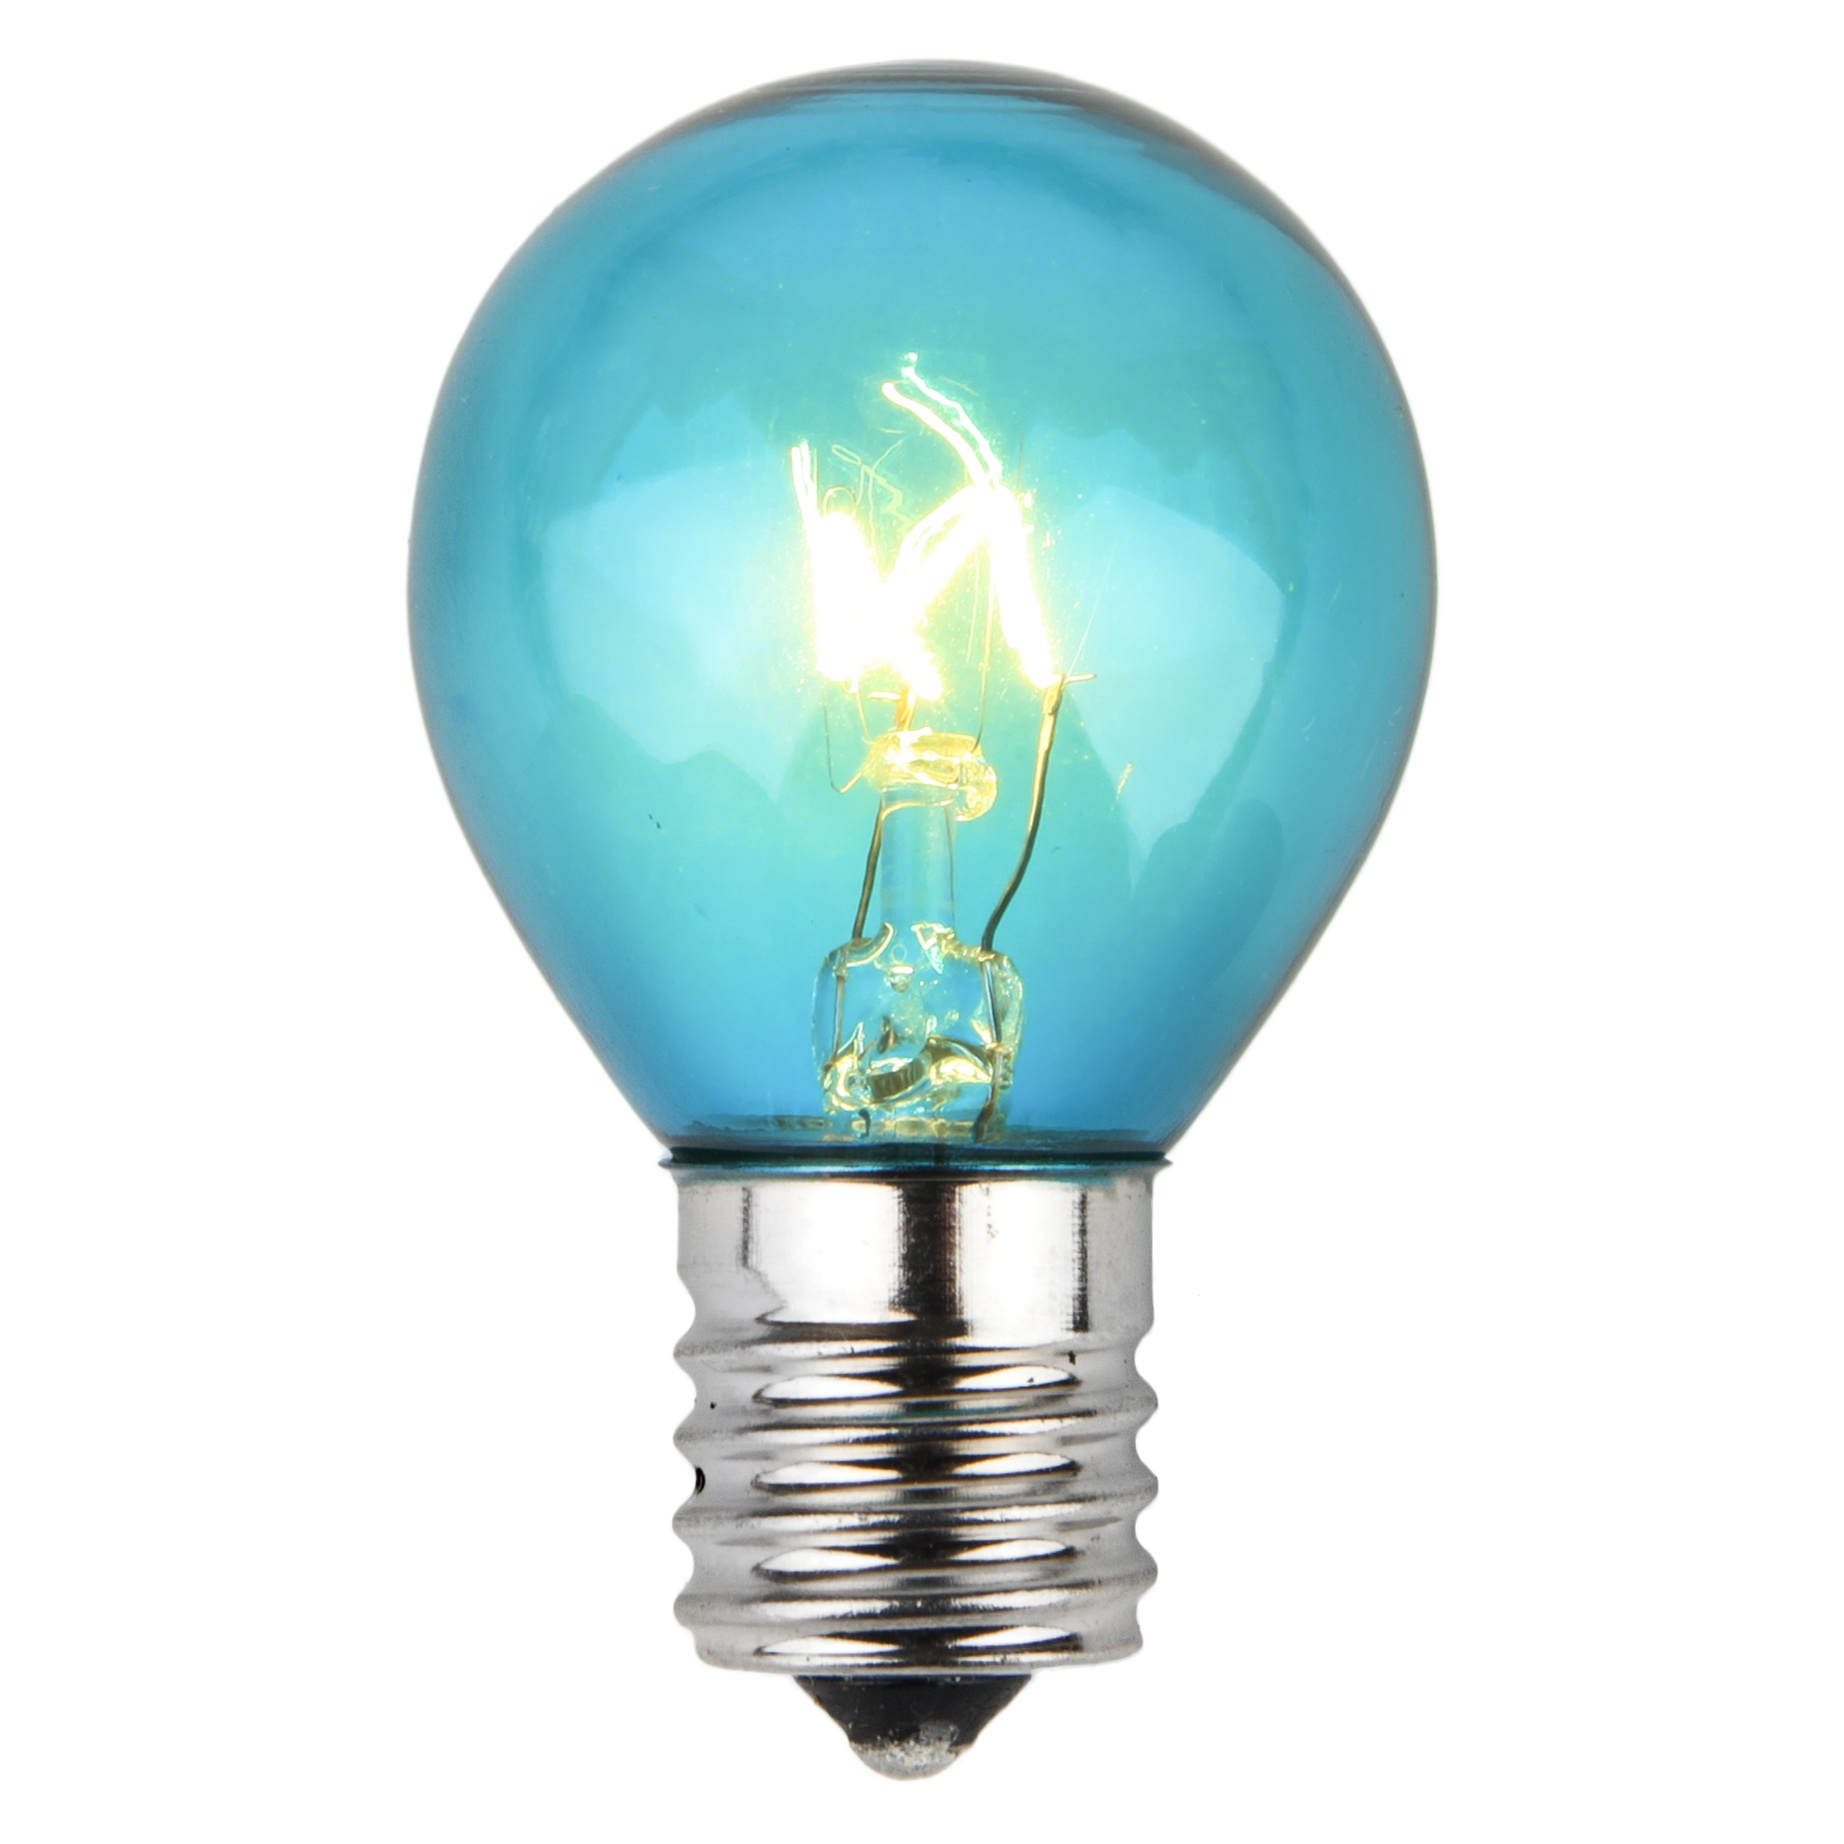 E17 Patio and Party Light Bulbs - S11 Triple Dipped Transparent Teal, 10 Watt Replacement Bulbs